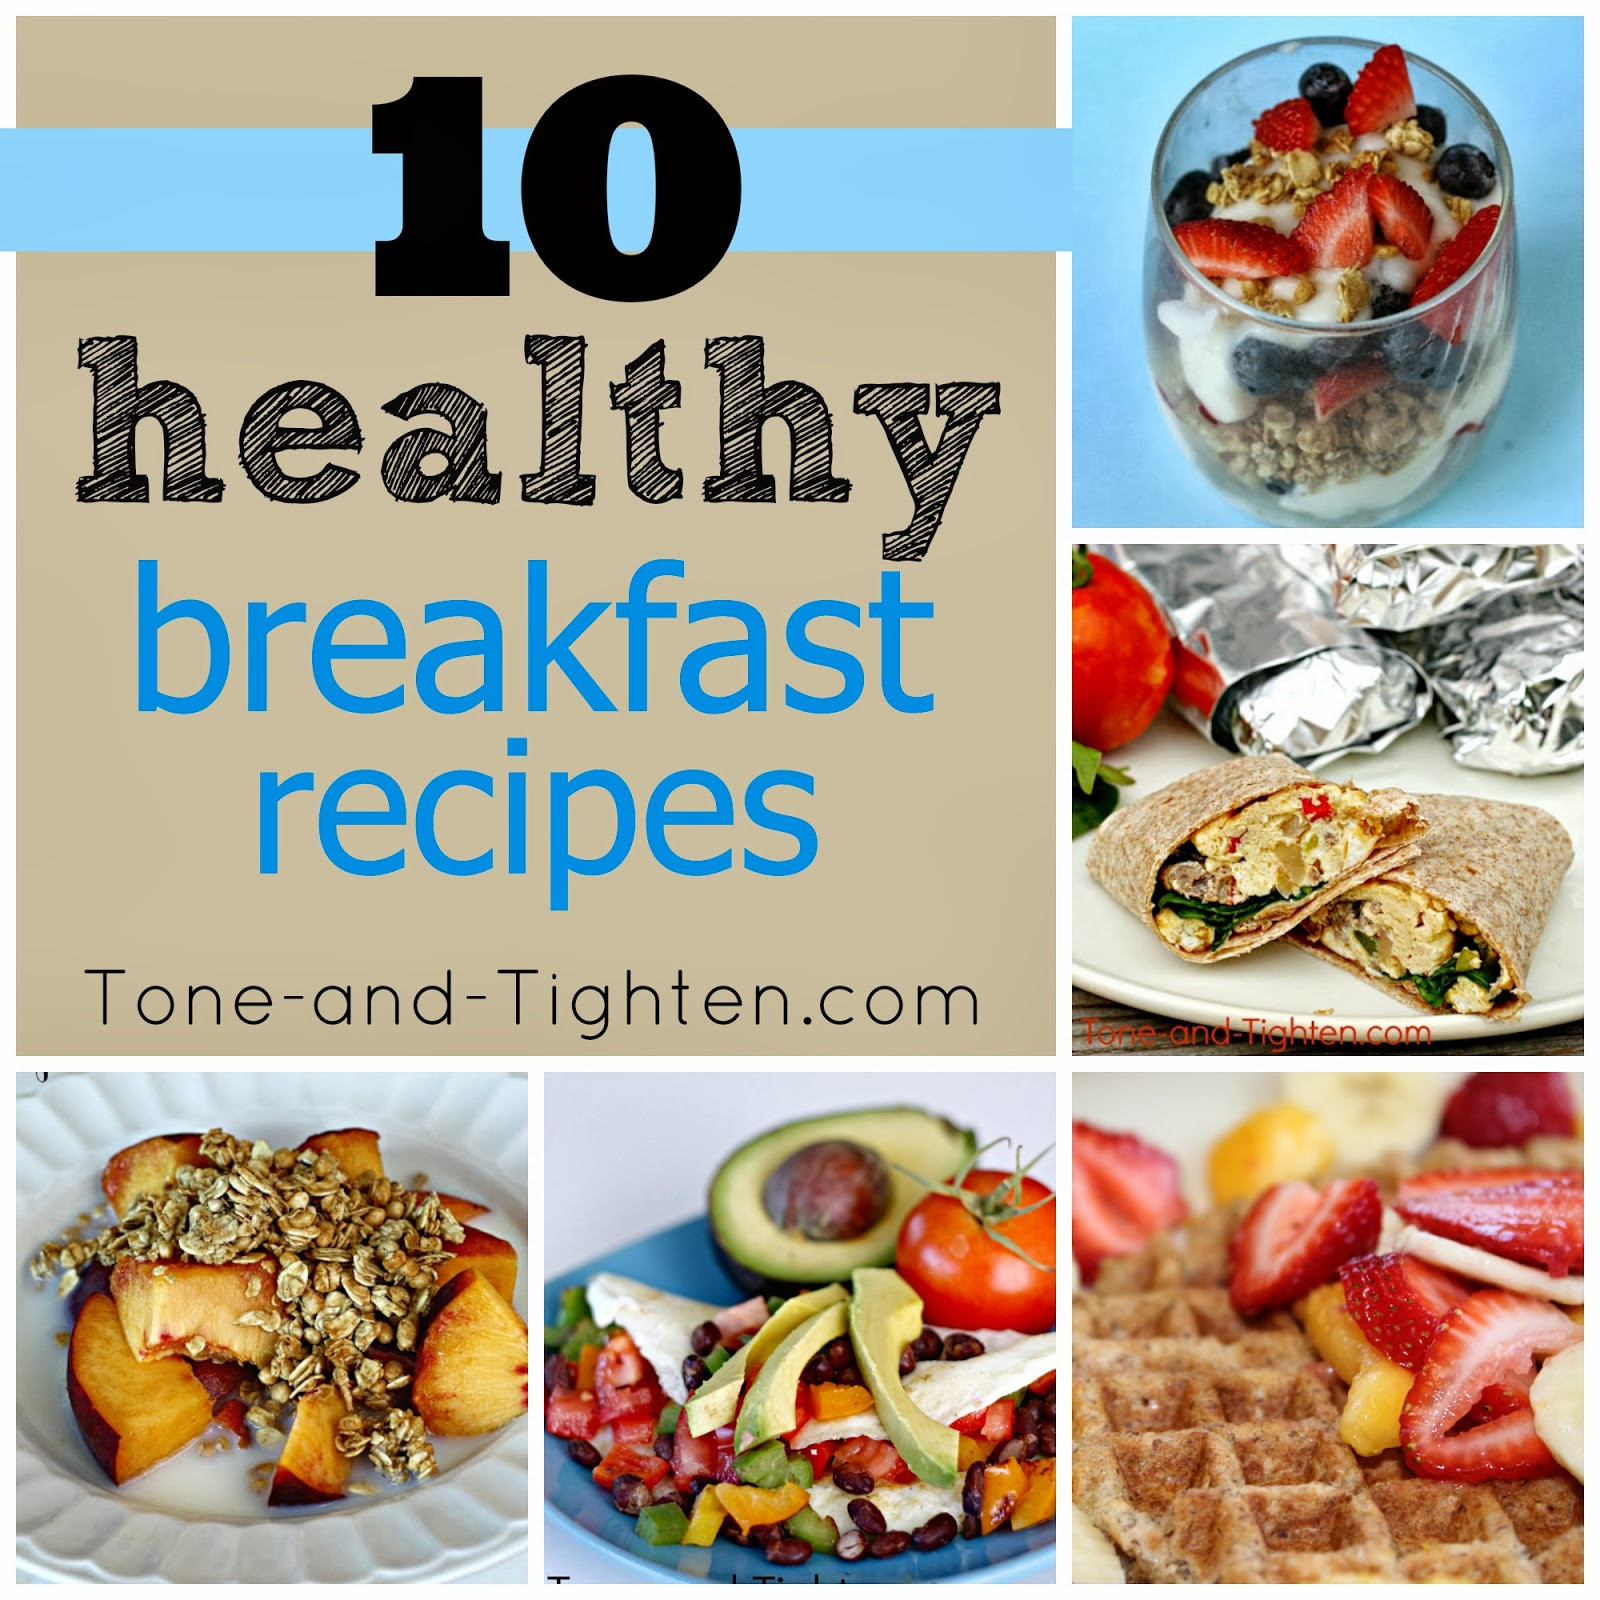 Healthy Recipes For Breakfast  10 QUICK Healthy Breakfast Recipes